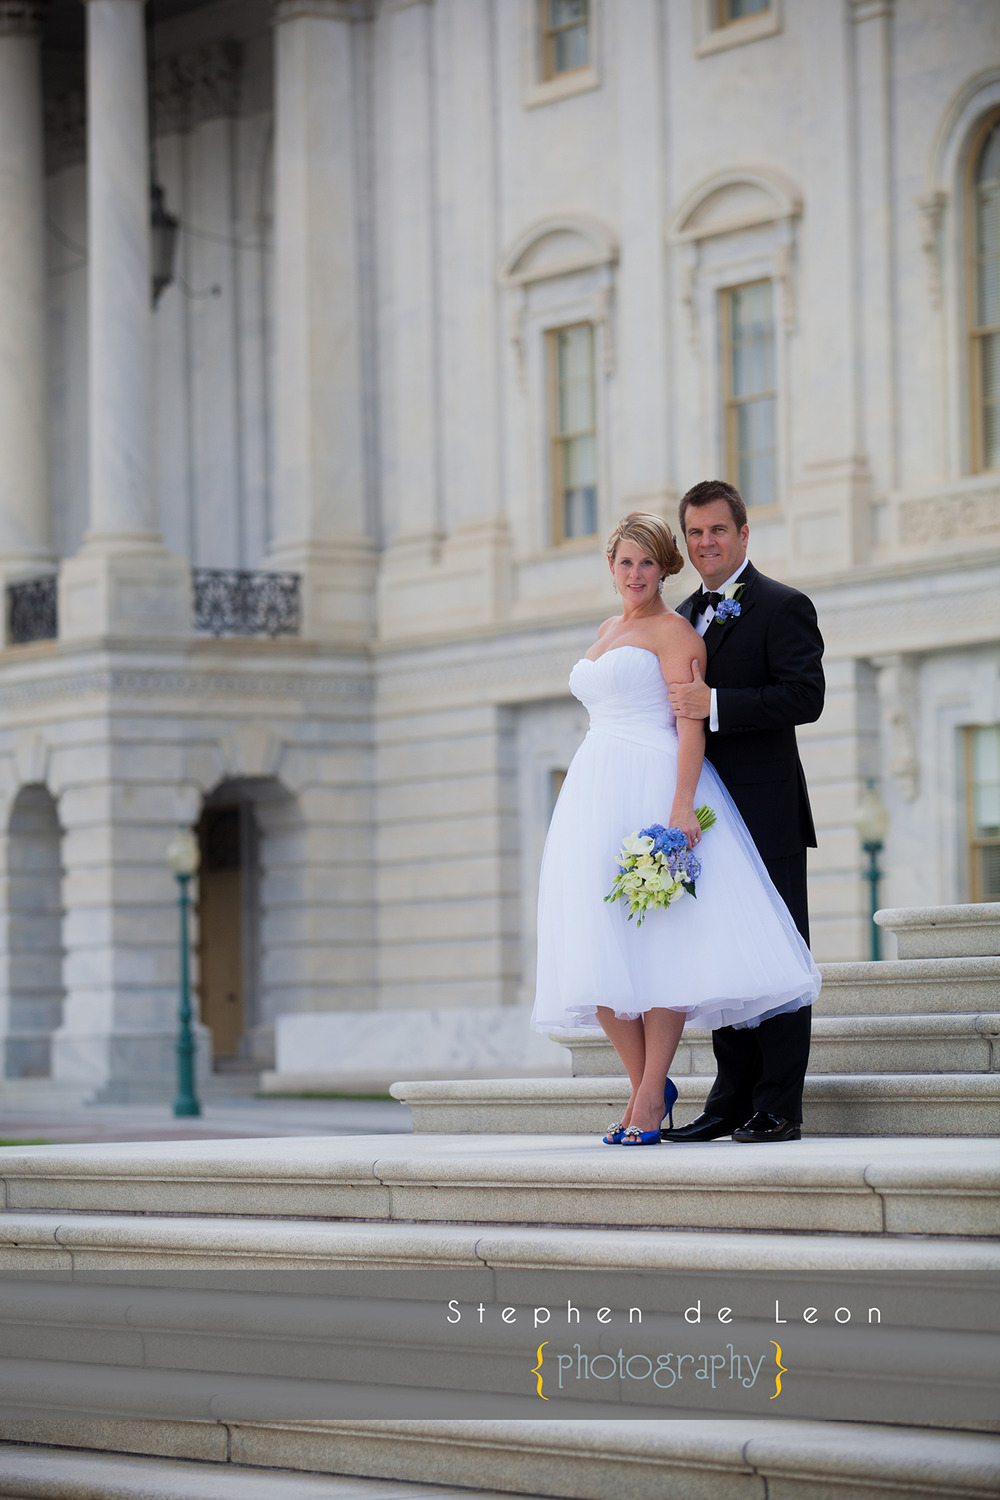 Stephen_de_Leon_Capitol_Wedding_Photography_15.jpg